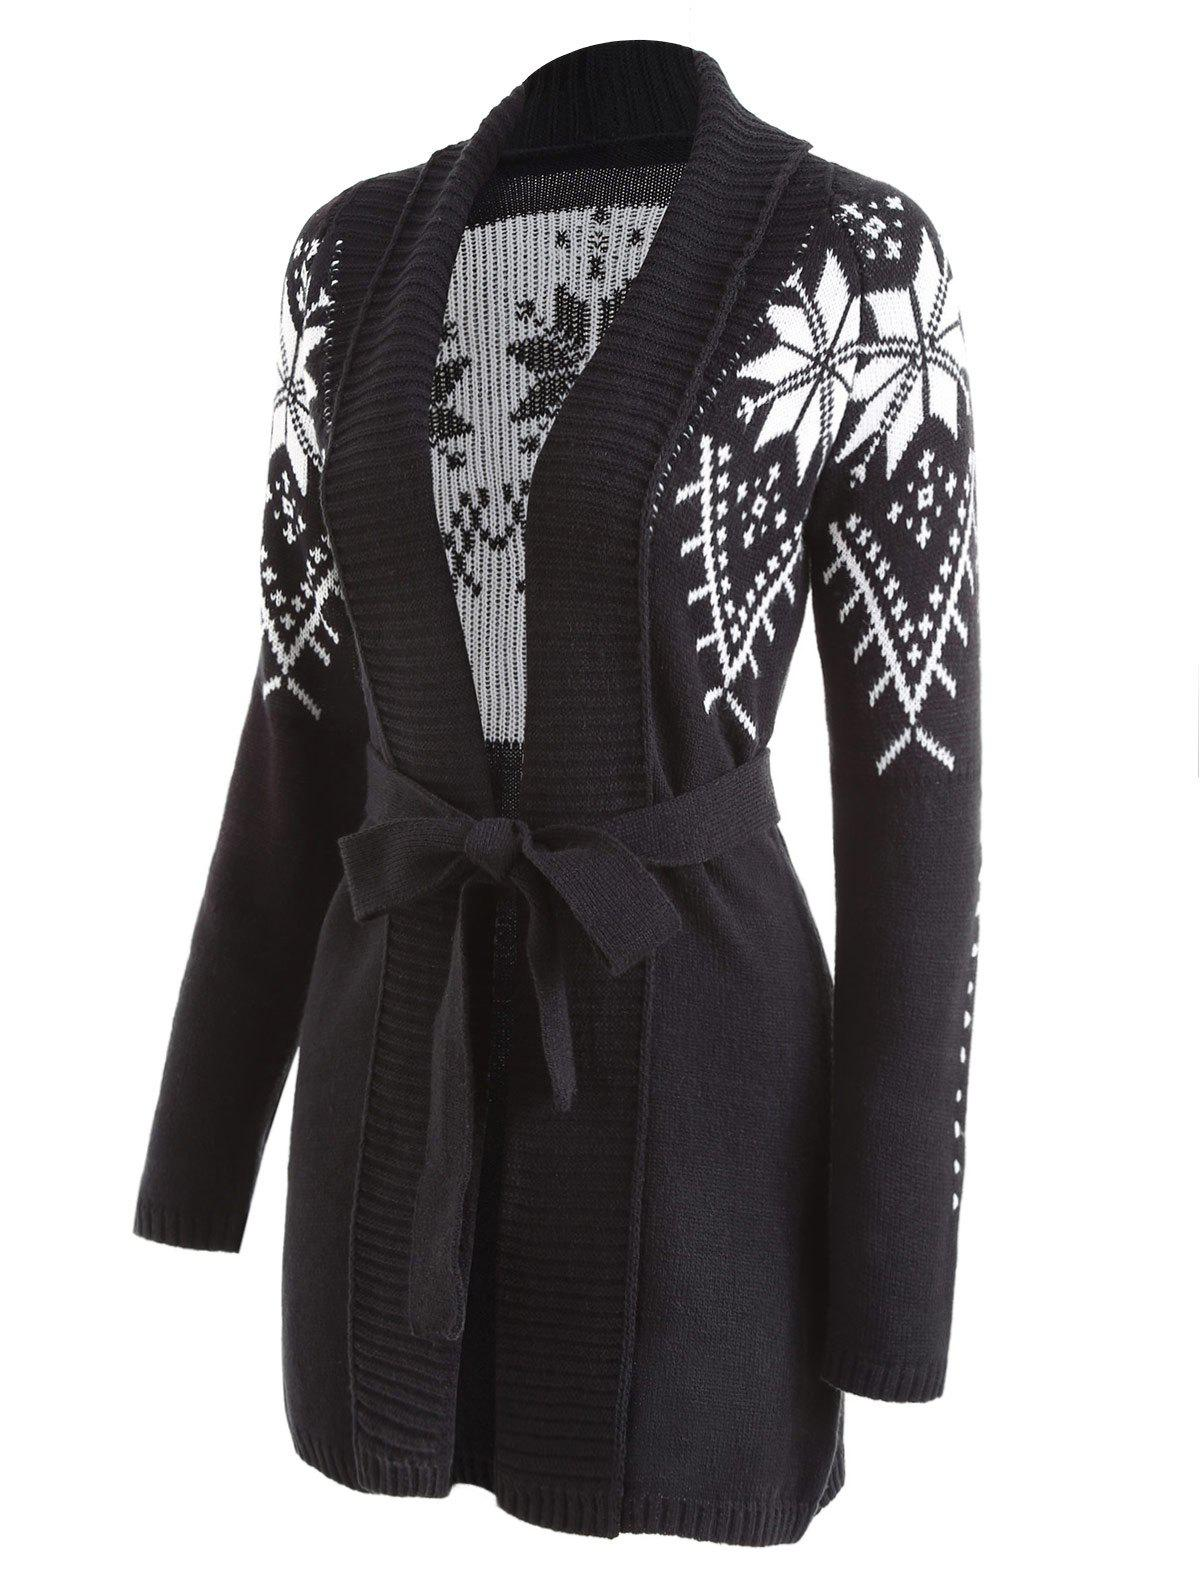 2018 Shawl Collar Snowflake Jacquard Wrap Cardigan BLACK S In ...